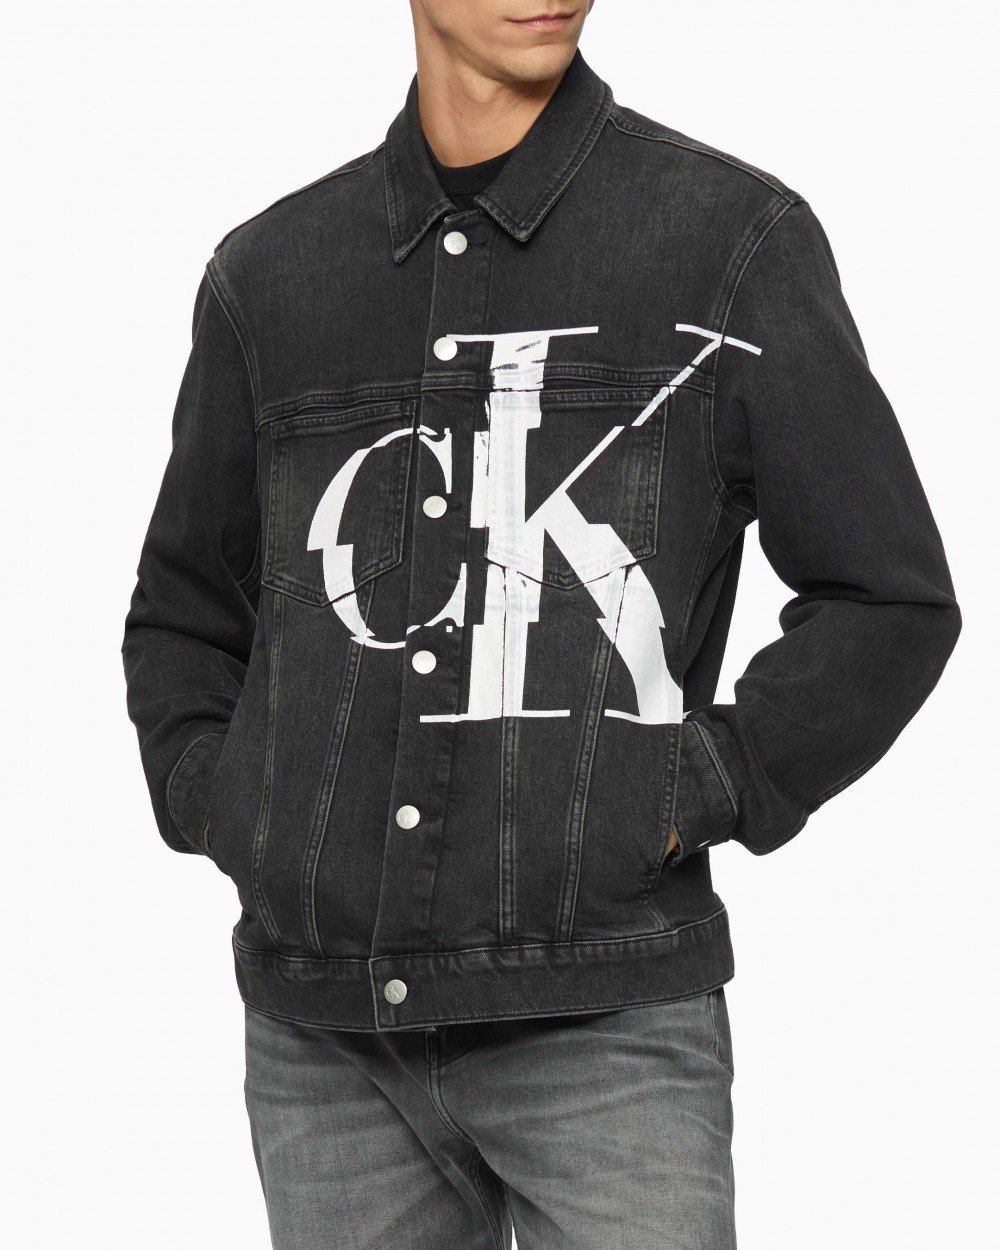 Calvin Klein - Áo khoác Nam CK 2 Pocket Denim Jacke 1BY-6192